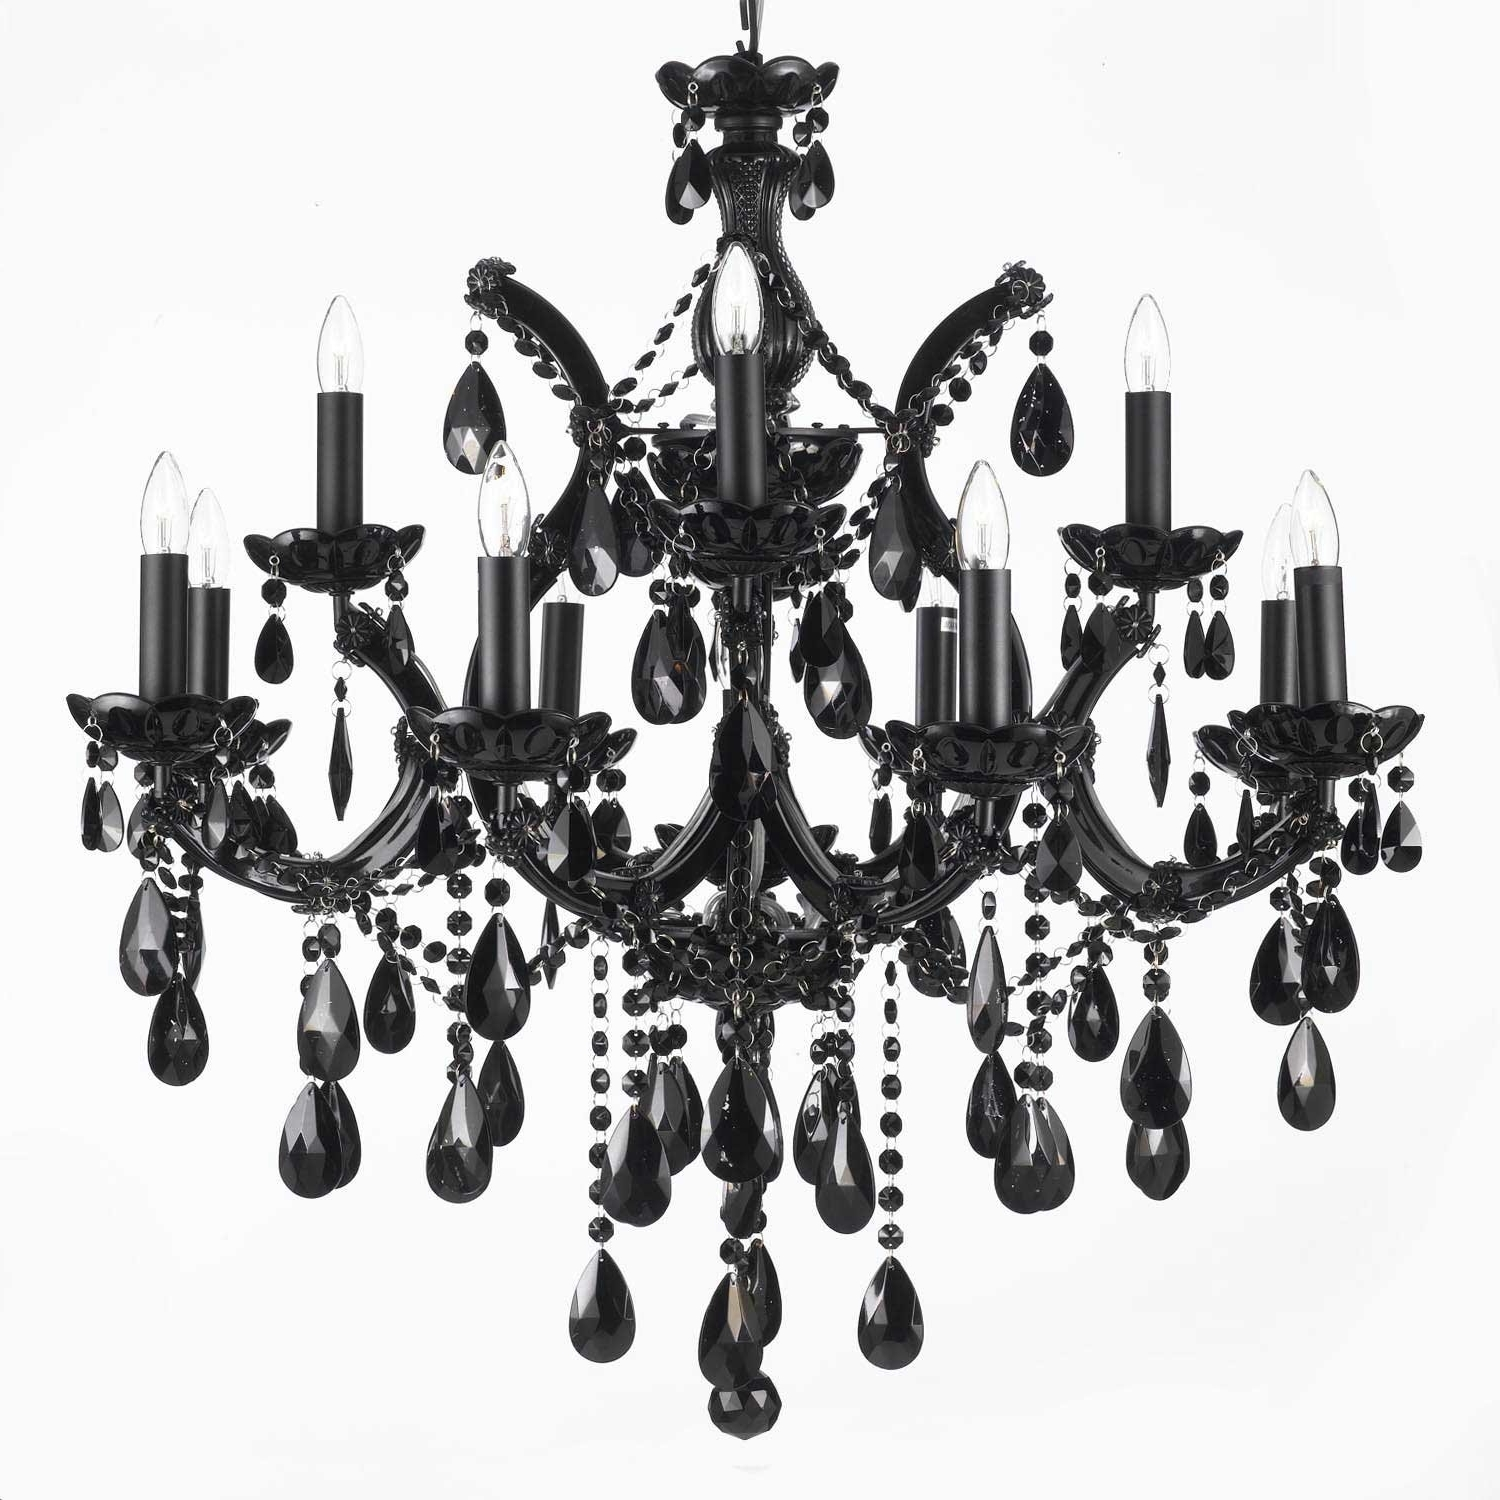 Jet Black Chandelier Crystal Lighting 30X28 – – Amazon Throughout Recent Black Chandelier (Gallery 10 of 15)